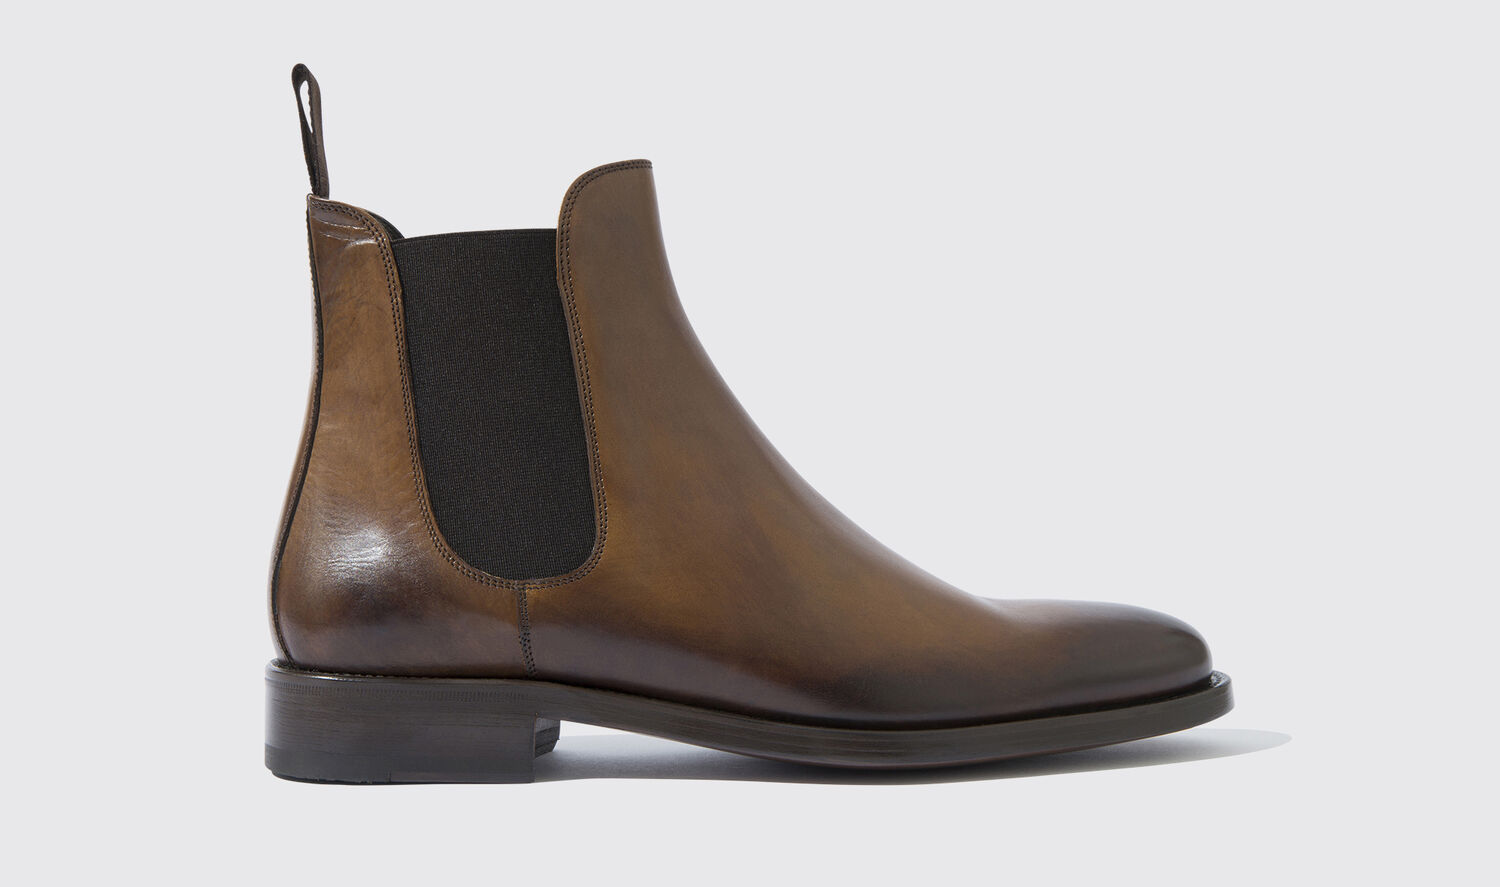 Image of Chelsea Boots Italian Shoe Scarosso male Enzo Castagno Chestnut Calf Calf Leather 46